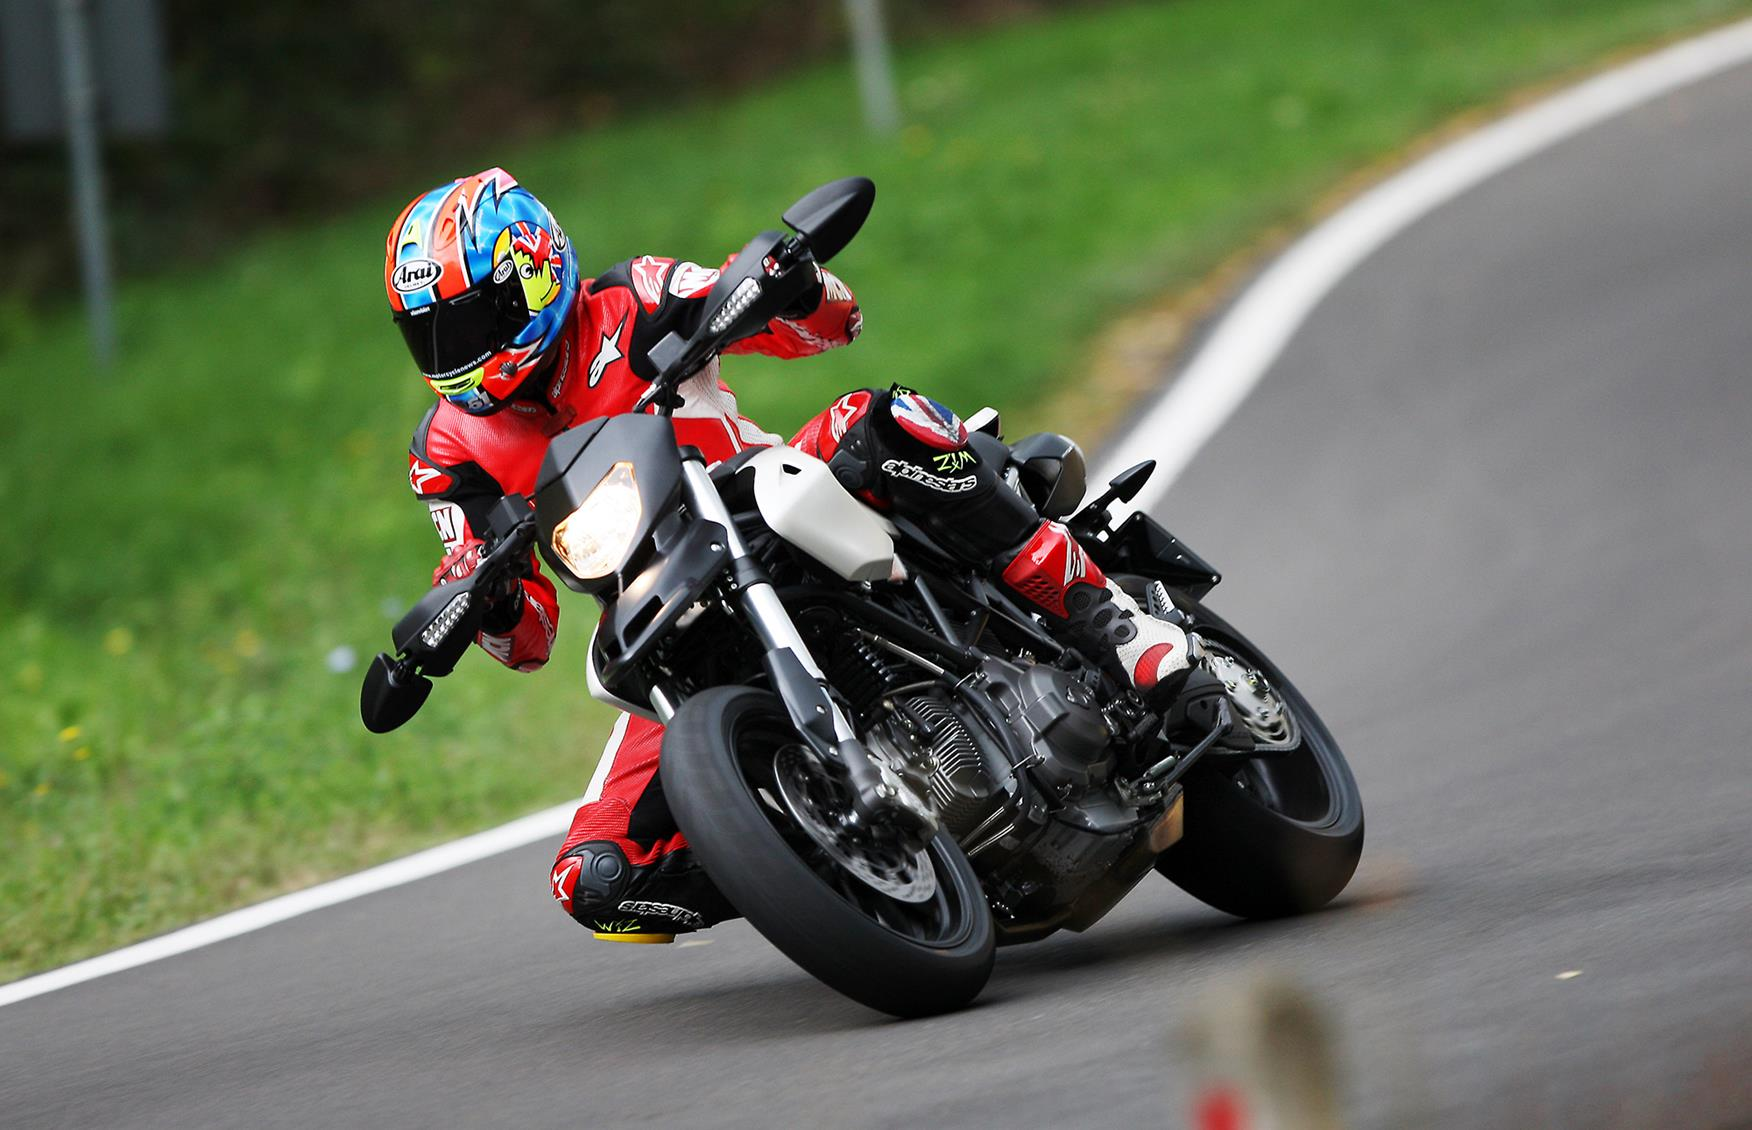 Cornering on the Ducati Hypermotard 796